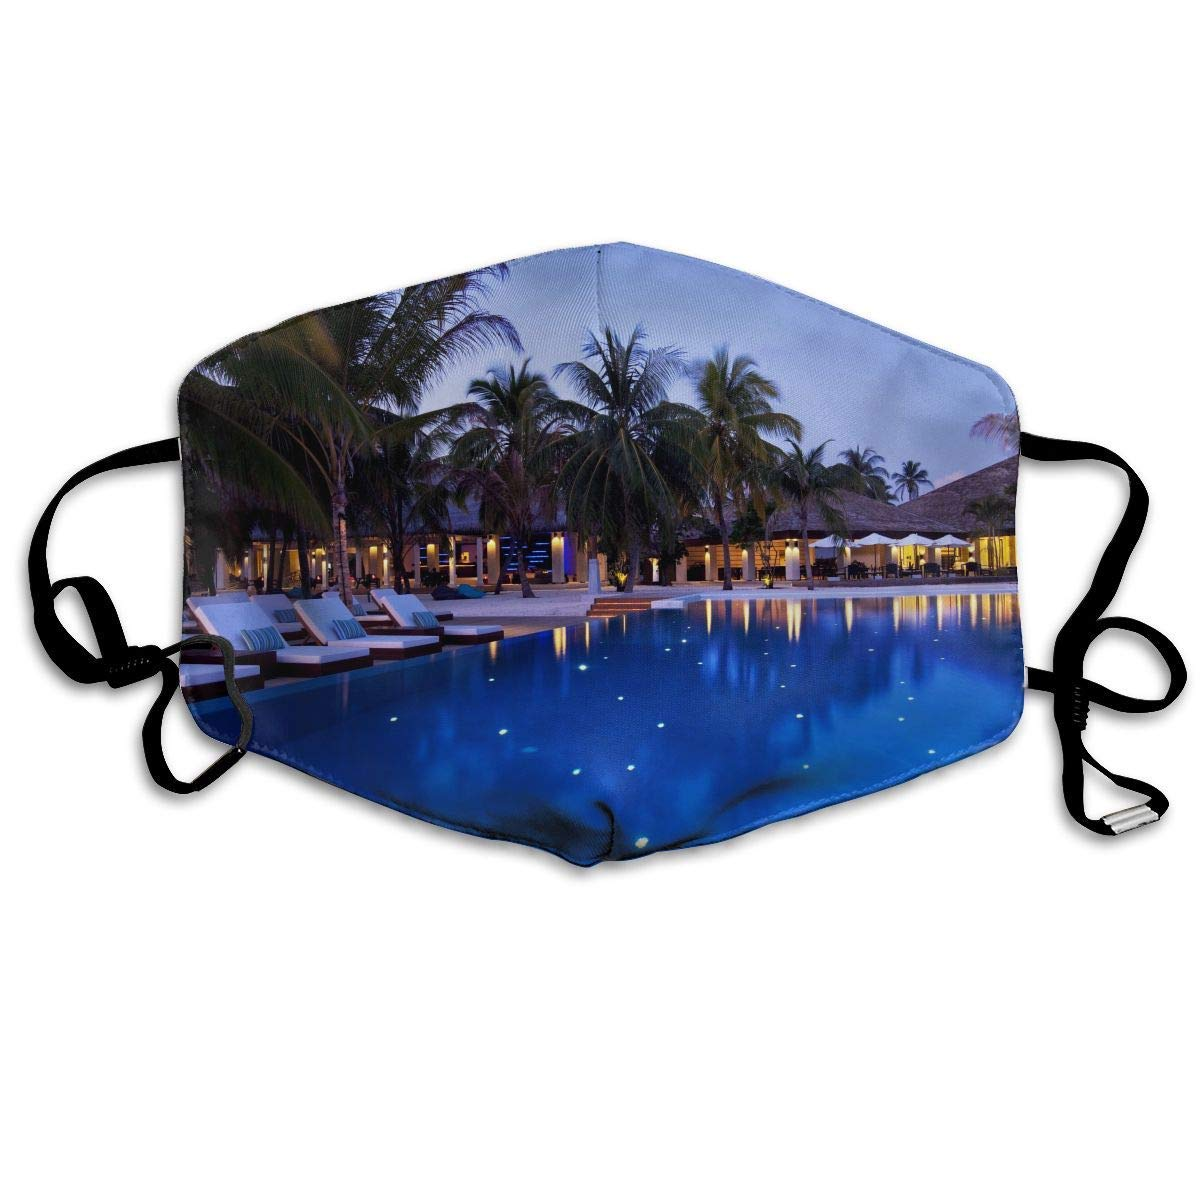 Daawqee Máscara de Boca, Evening Hotel Pool Palm Adult Fashion Mascarilla Washable Safety 100% Polyester Comfortable Breathable Health Half Face Masks